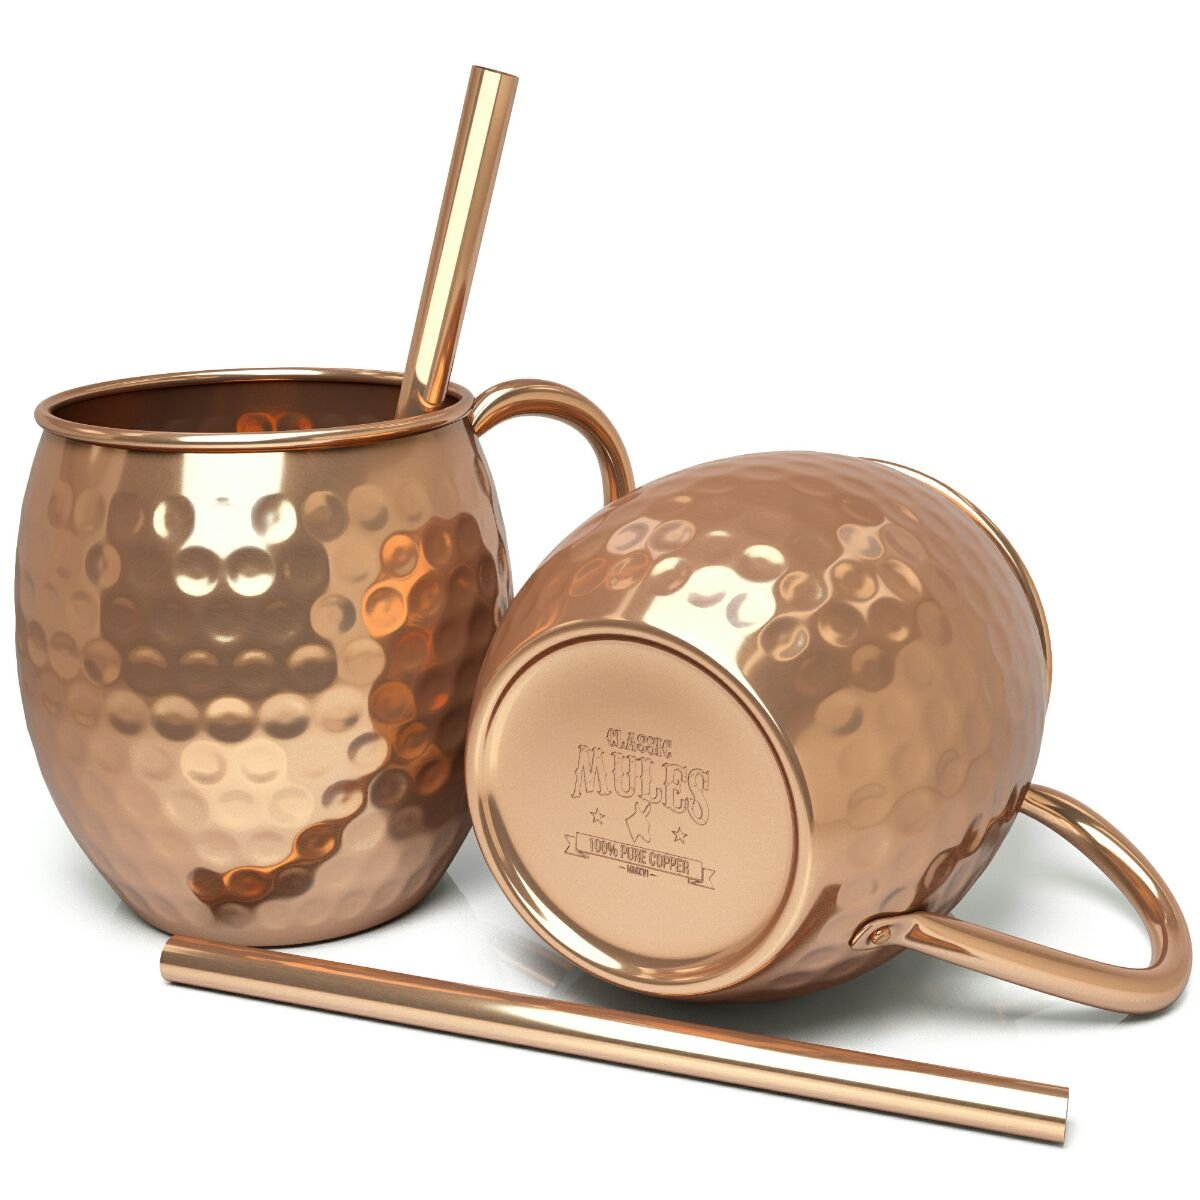 100% Pure Copper Mugs (set of 2) - 16oz Hammered Copper Cups - BONUS Copper Straws - Moscow Mule Copper Mugs - Riveted Handles